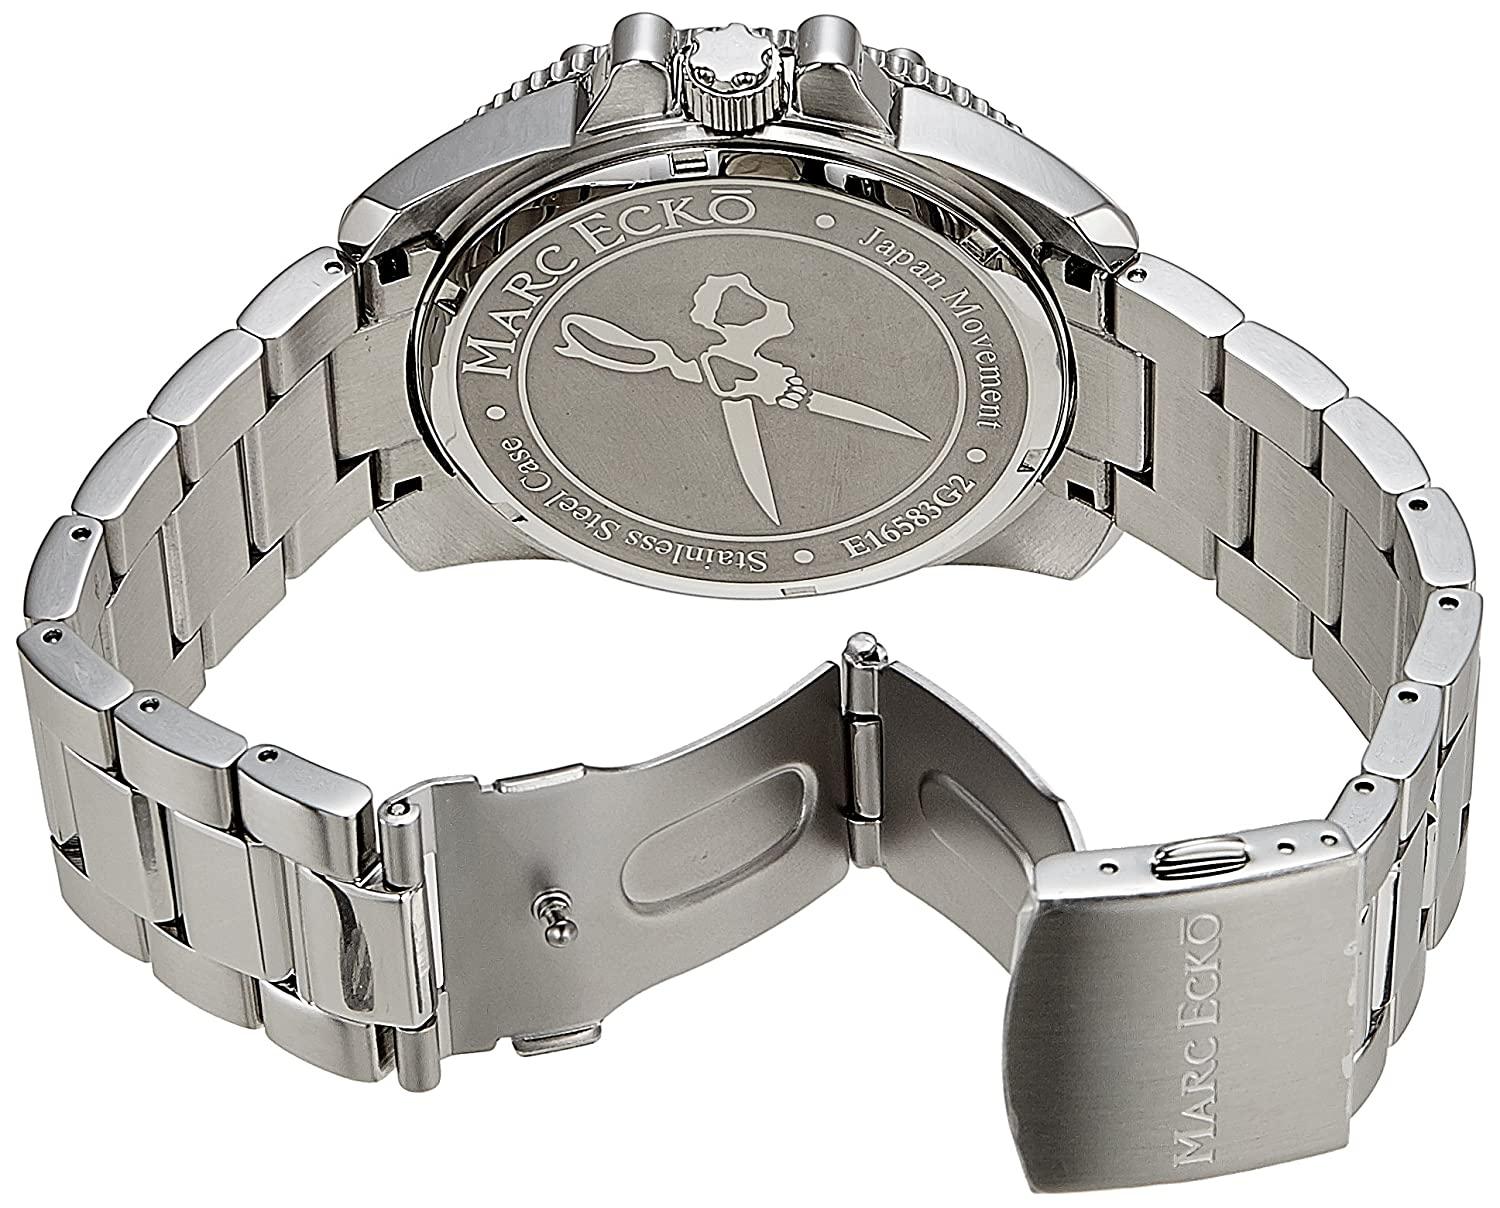 Amazon.com: Marc Ecko Mens E16583G2 The Flash Stainless-Steel Bracelet Watch: Marc Ecko: Watches